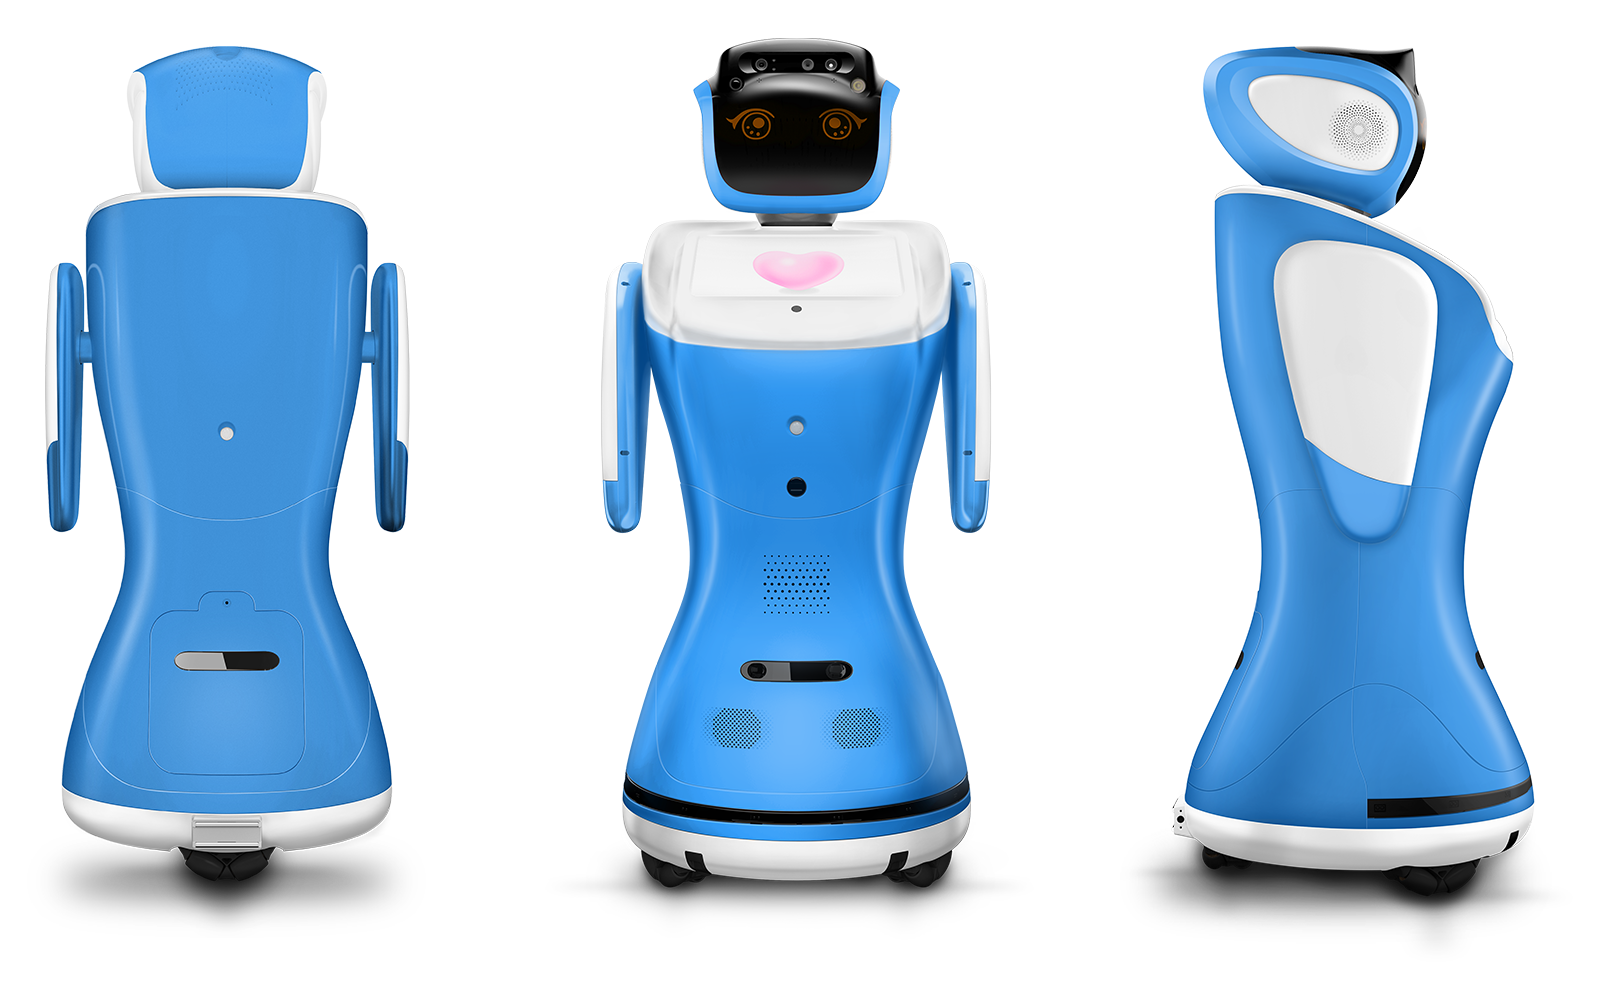 telepresence robot, remote control robot, business service robot